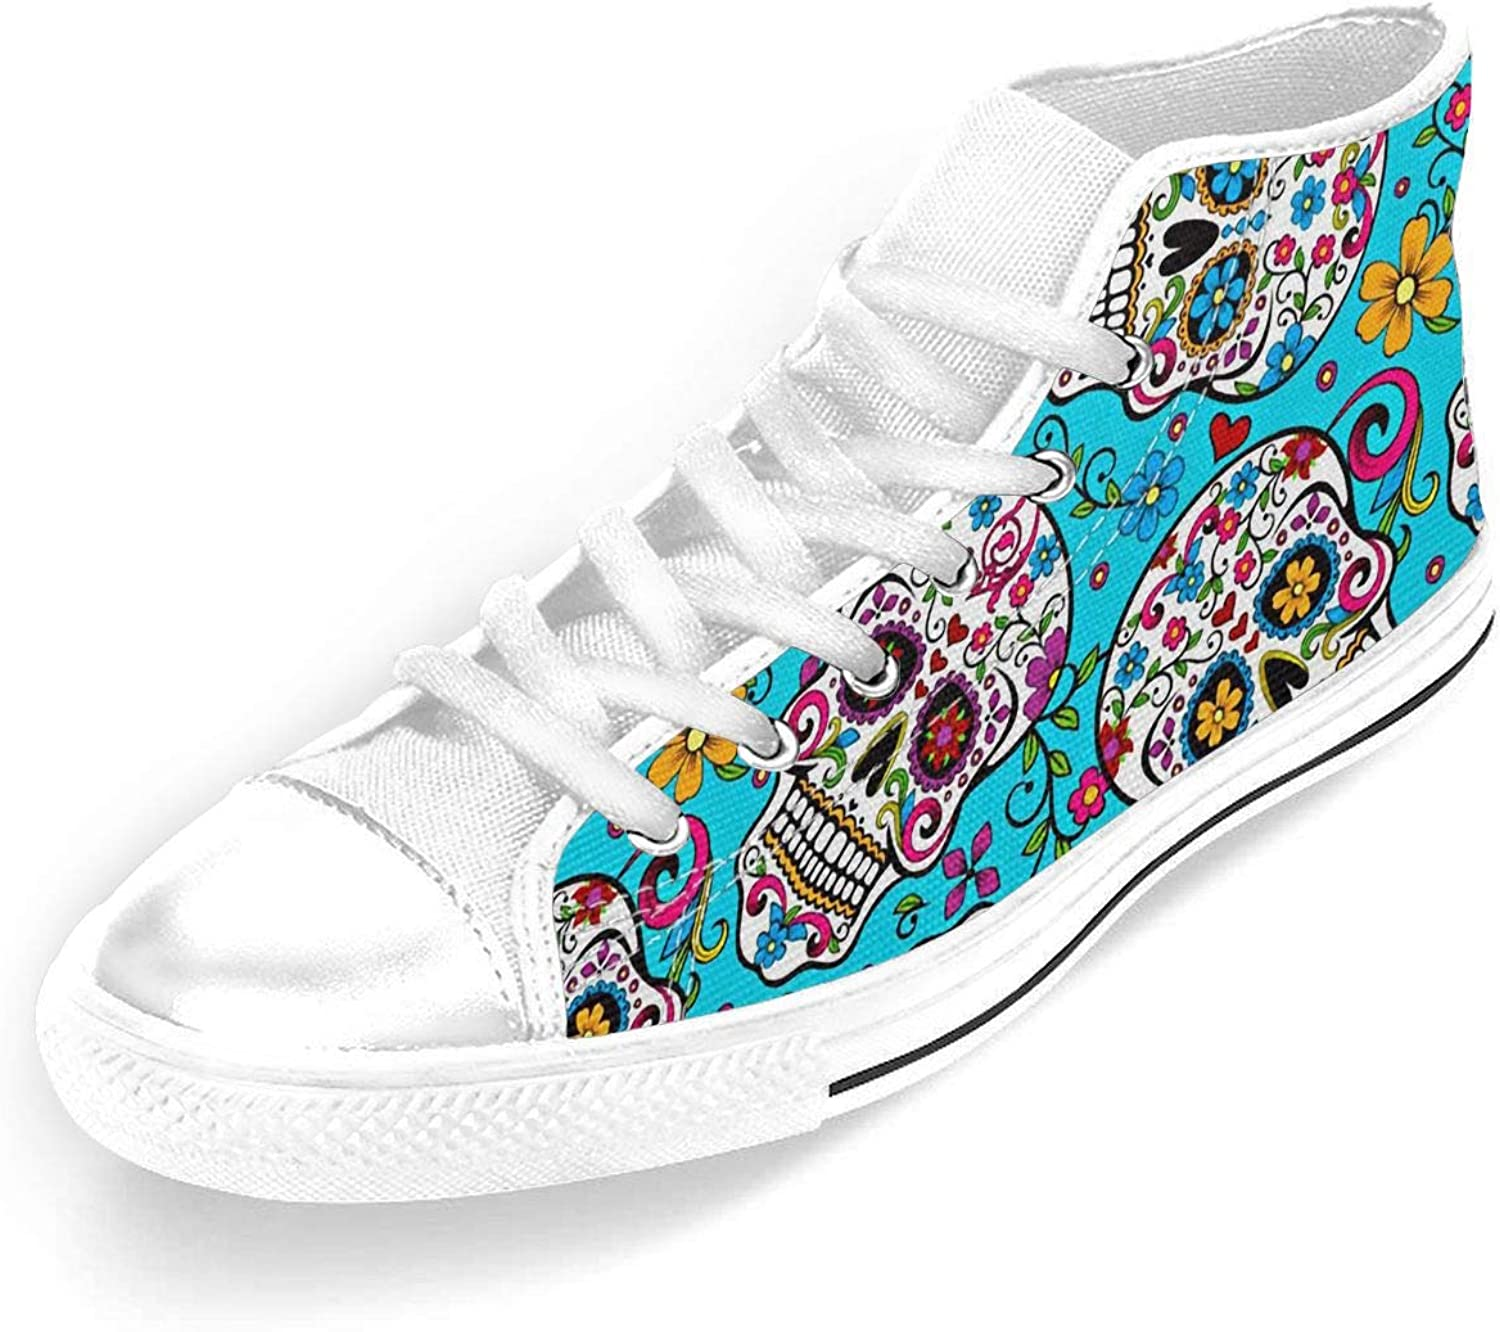 colors Day of The Dead Skull Womens and Mens High Top Classic Canvas shoes Rubber Sole Lace-Up Trainer shoes